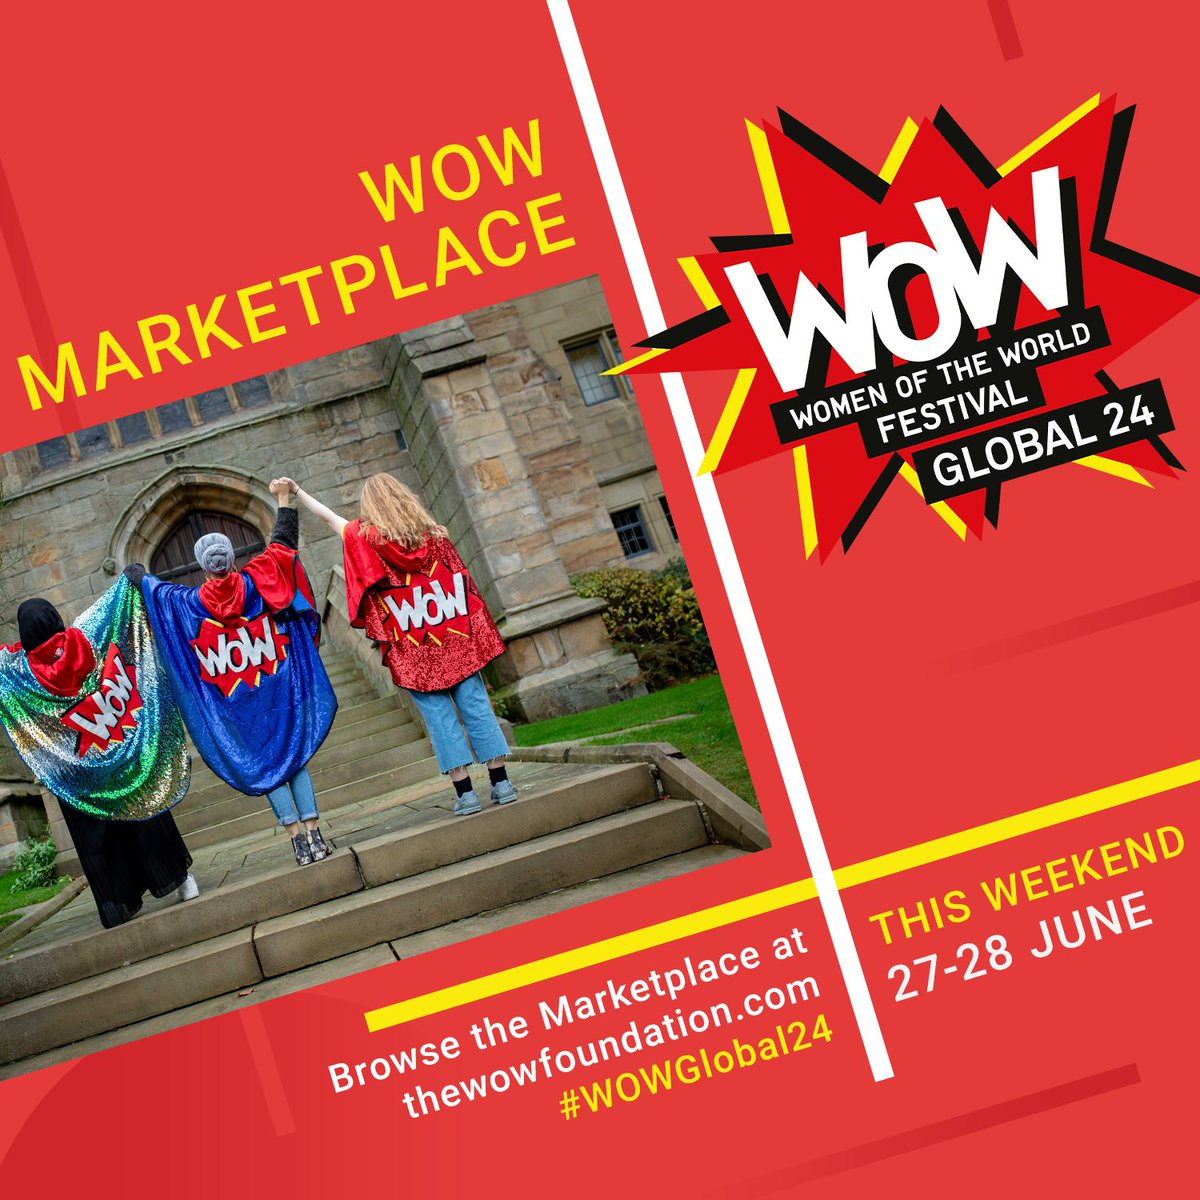 Head over to WOW's online Marketplace with @JanetsList to see the incredible work of Black and women of colour led social enterprises including @irenemoore_  - Special thanks to WOW's Hour Partner @Virgin @VirginStartUp for their commitment to female-led businesses https://t.co/YV5ZhrFuGO